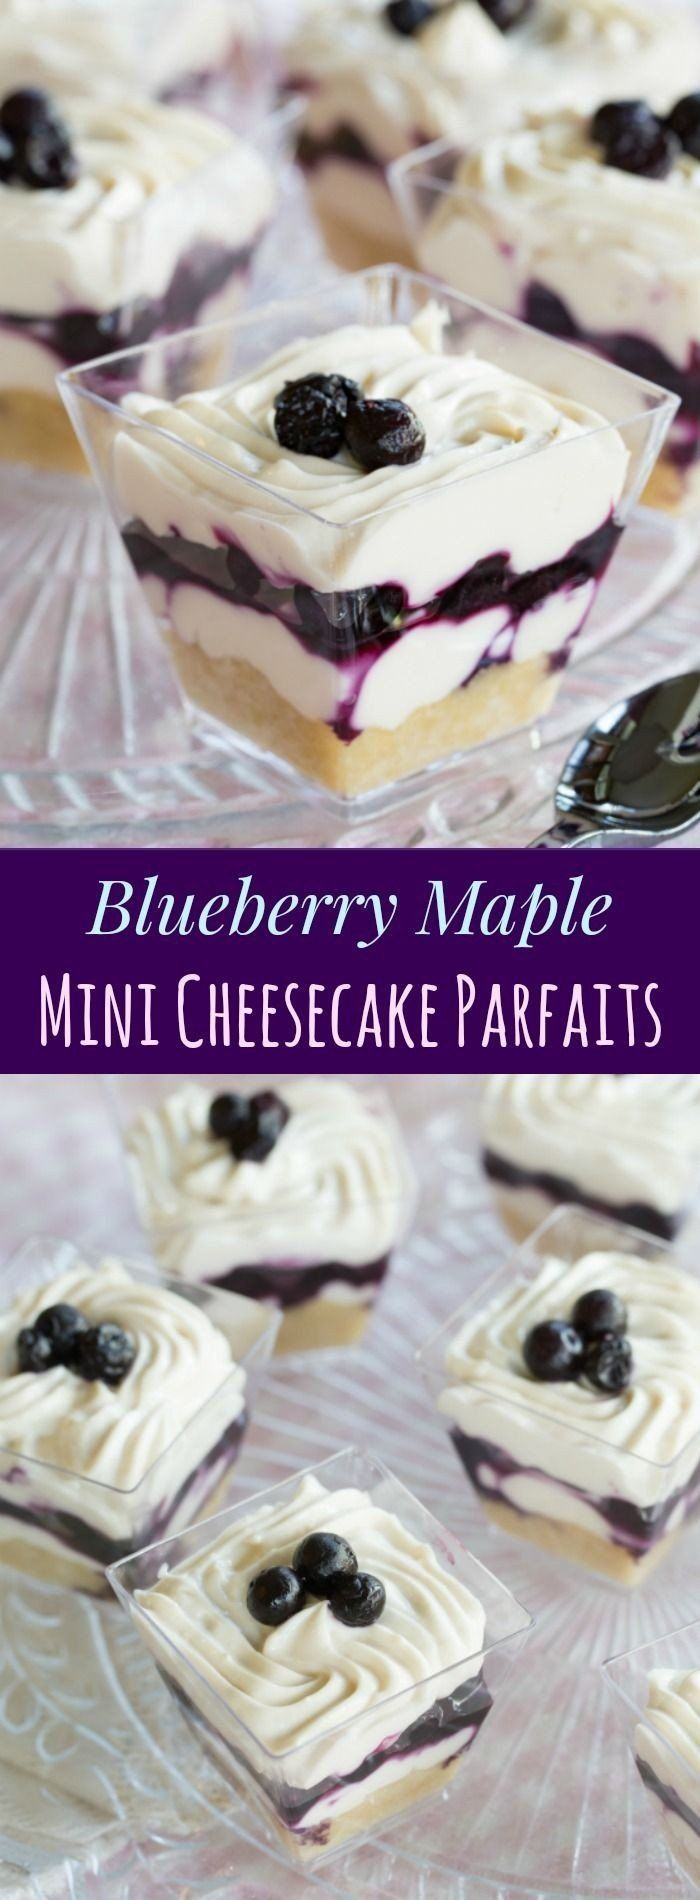 44 Seriously Delicious and Healthy Parfait Recipes